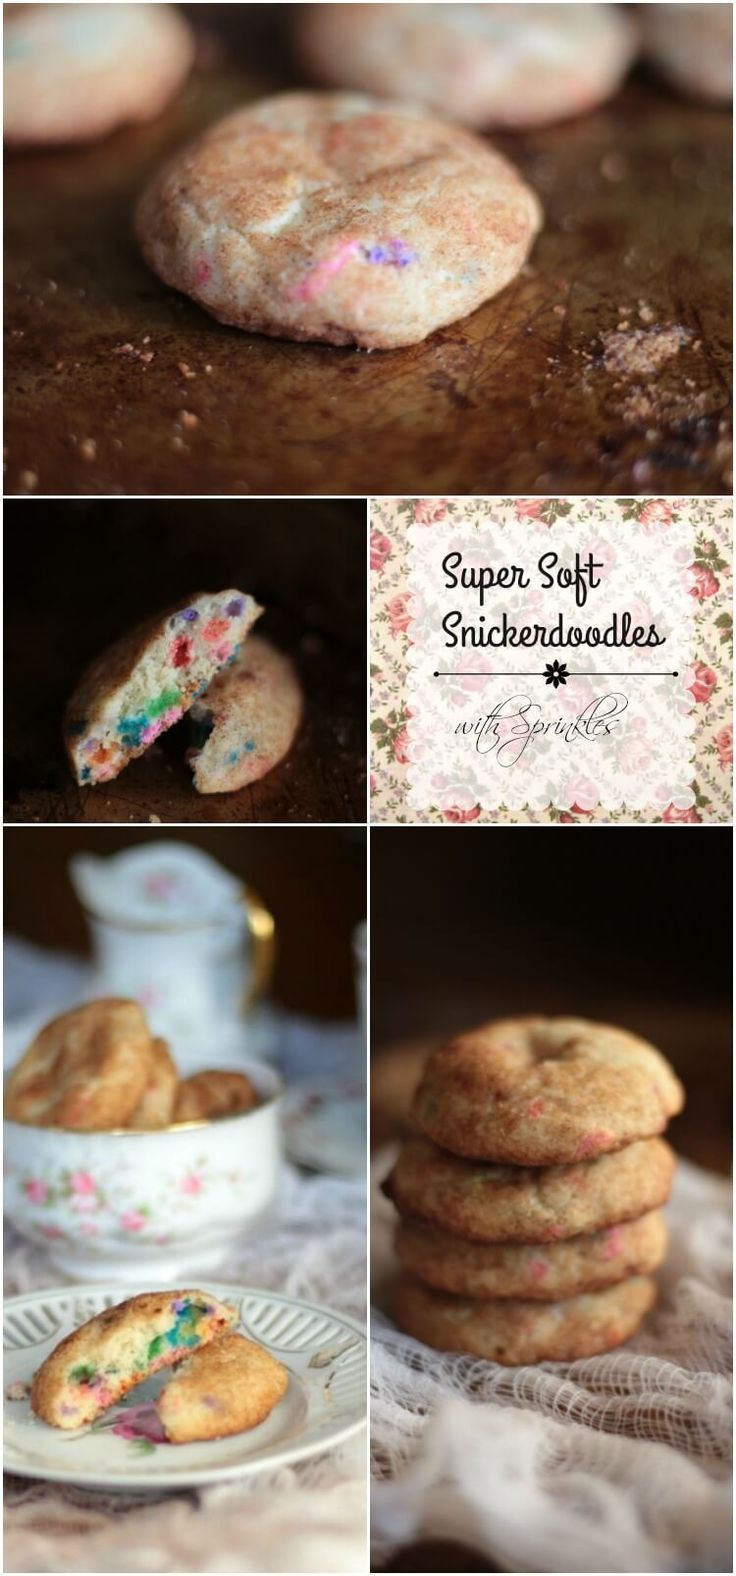 Best chewy, soft Snickerdoodle recipe ever! Sweet buttery goodness with tons of cinnamon flavor... plus sprinkles! From http://restlesschipotle.com